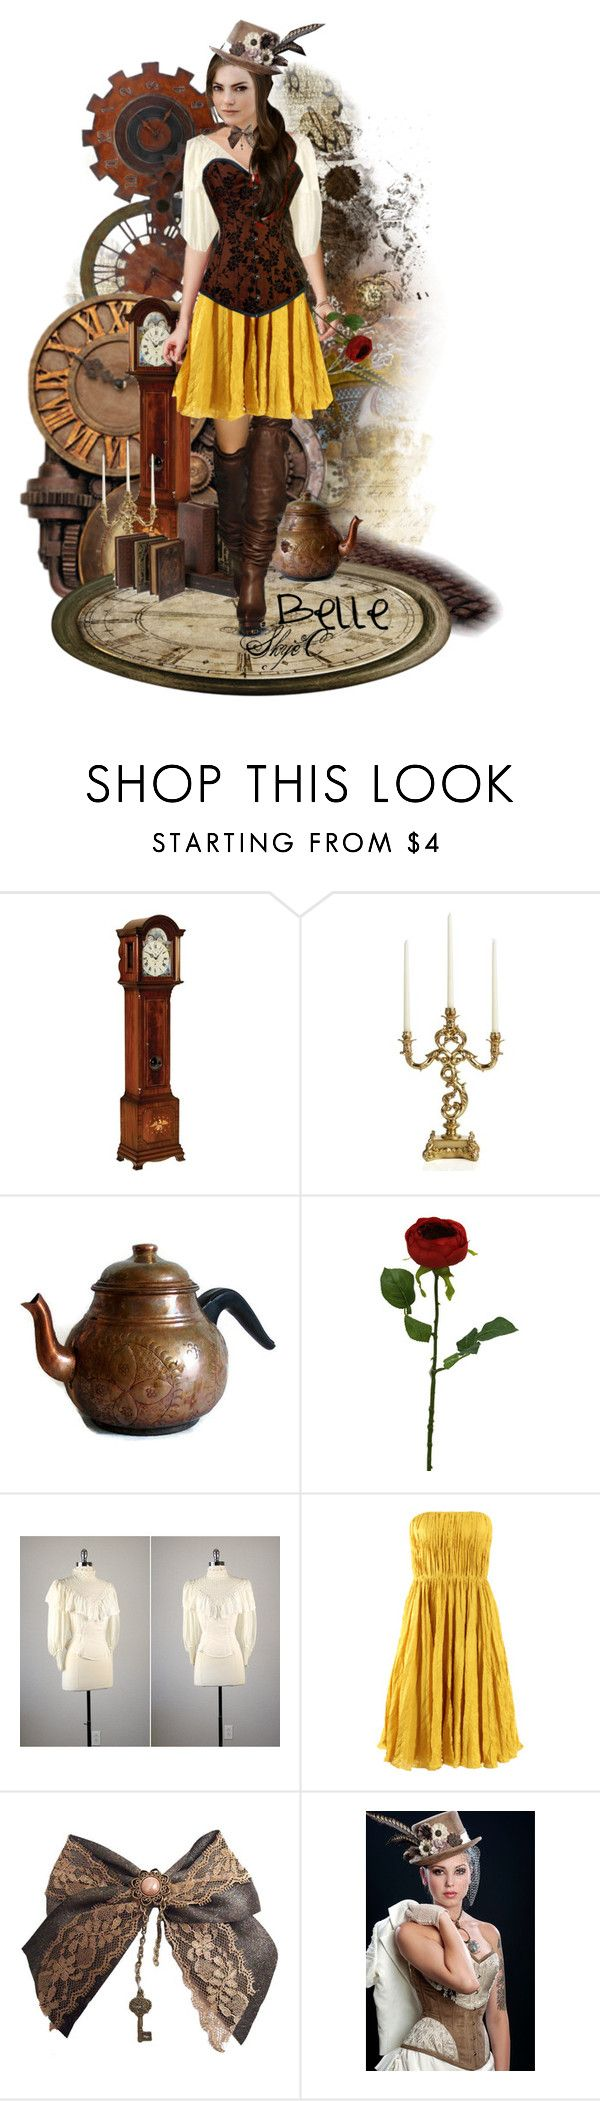 """Steampunk Belle Inspired Doll - Emma Stone"" by rubytyra ❤ liked on Polyvore featuring Buccellati, Oscar de la Renta, victorian, steampunk, beauty and the beast, top hat, skirt, boots, shirt and bow tie"